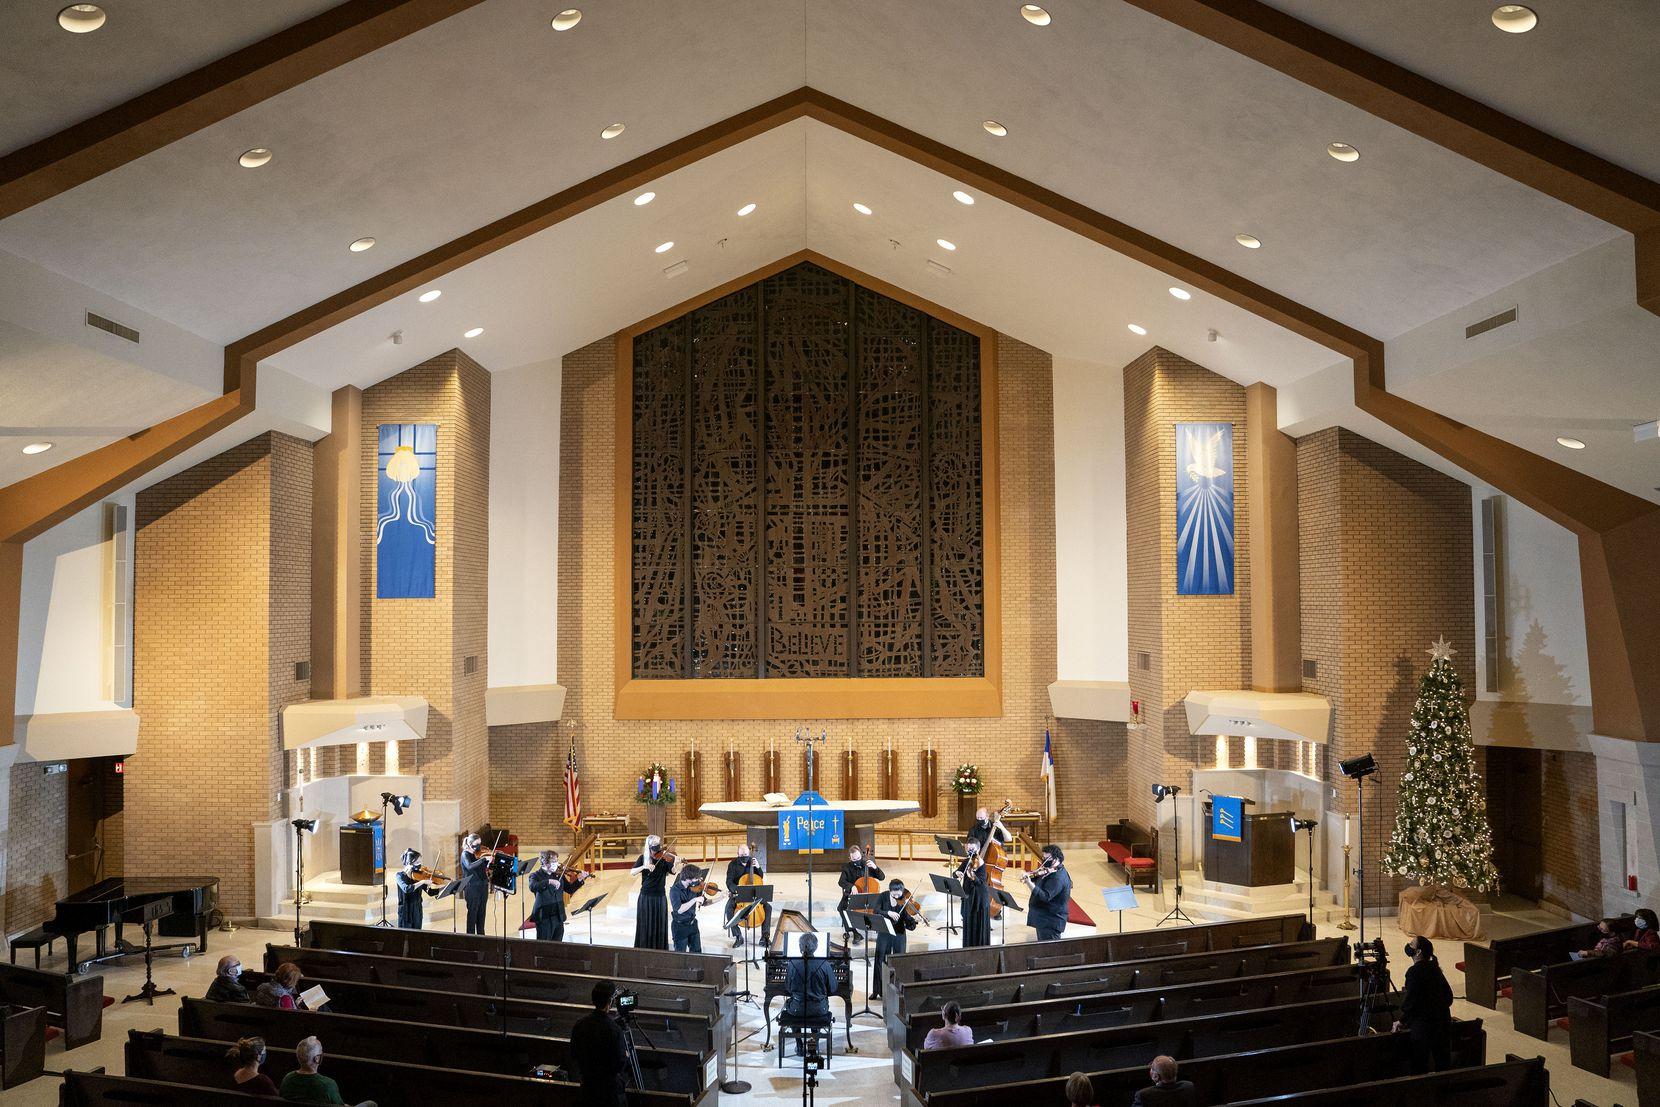 The Dallas Bach Society's orchestra, led by conductor James Richman, performs their Christmas Concertos concert Jan. 1, 2017 at Zion Lutheran Church in Dallas.